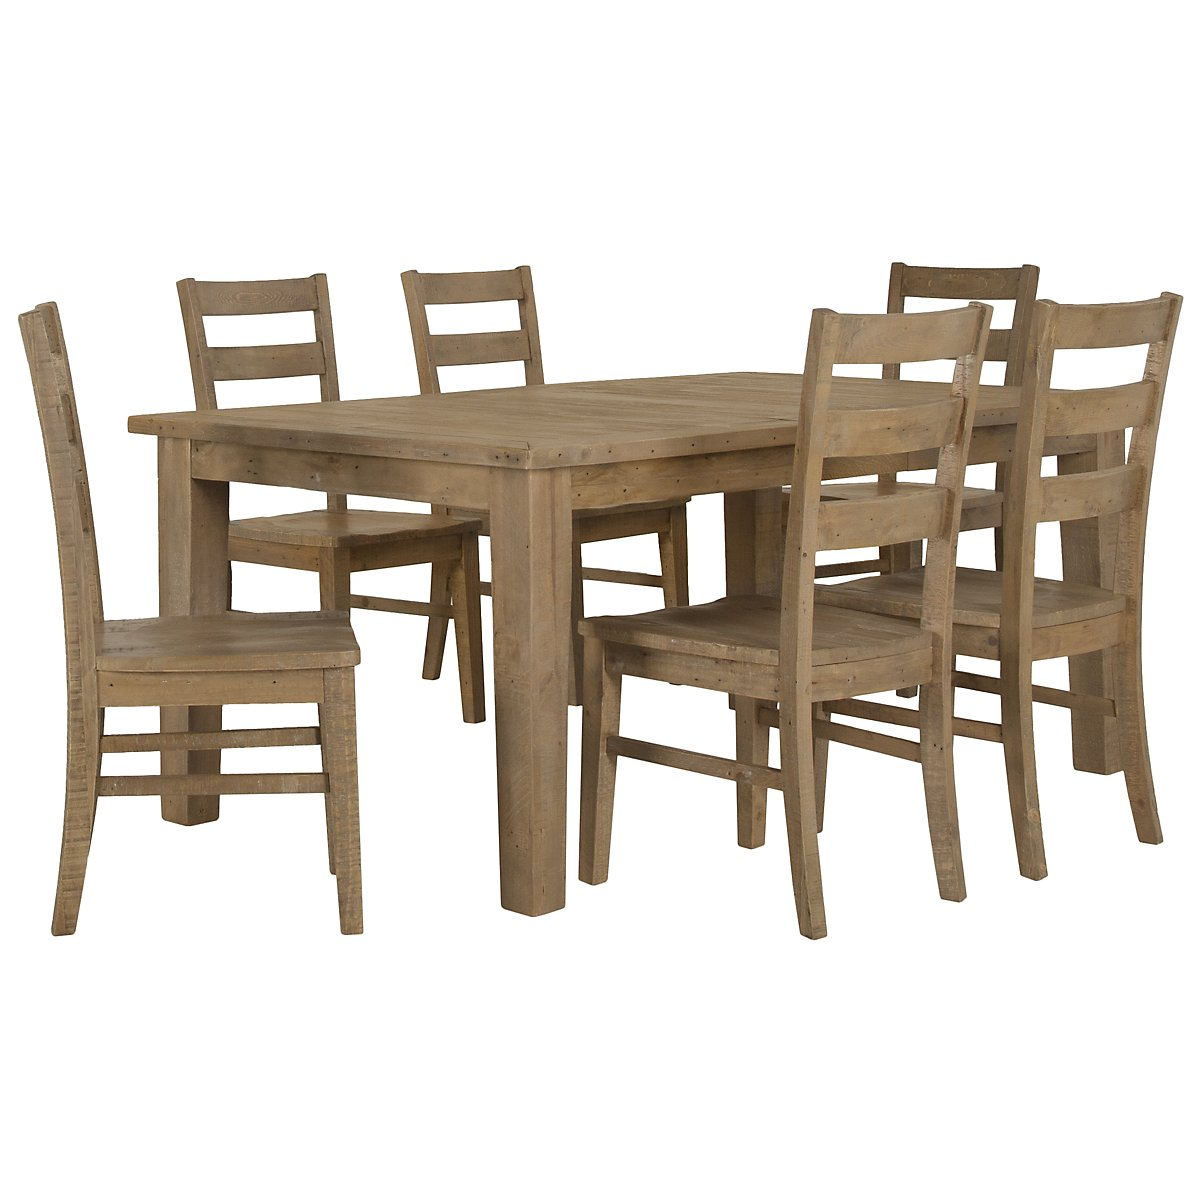 Jaden Light Tone Wood Table & 4 Wood Chairs